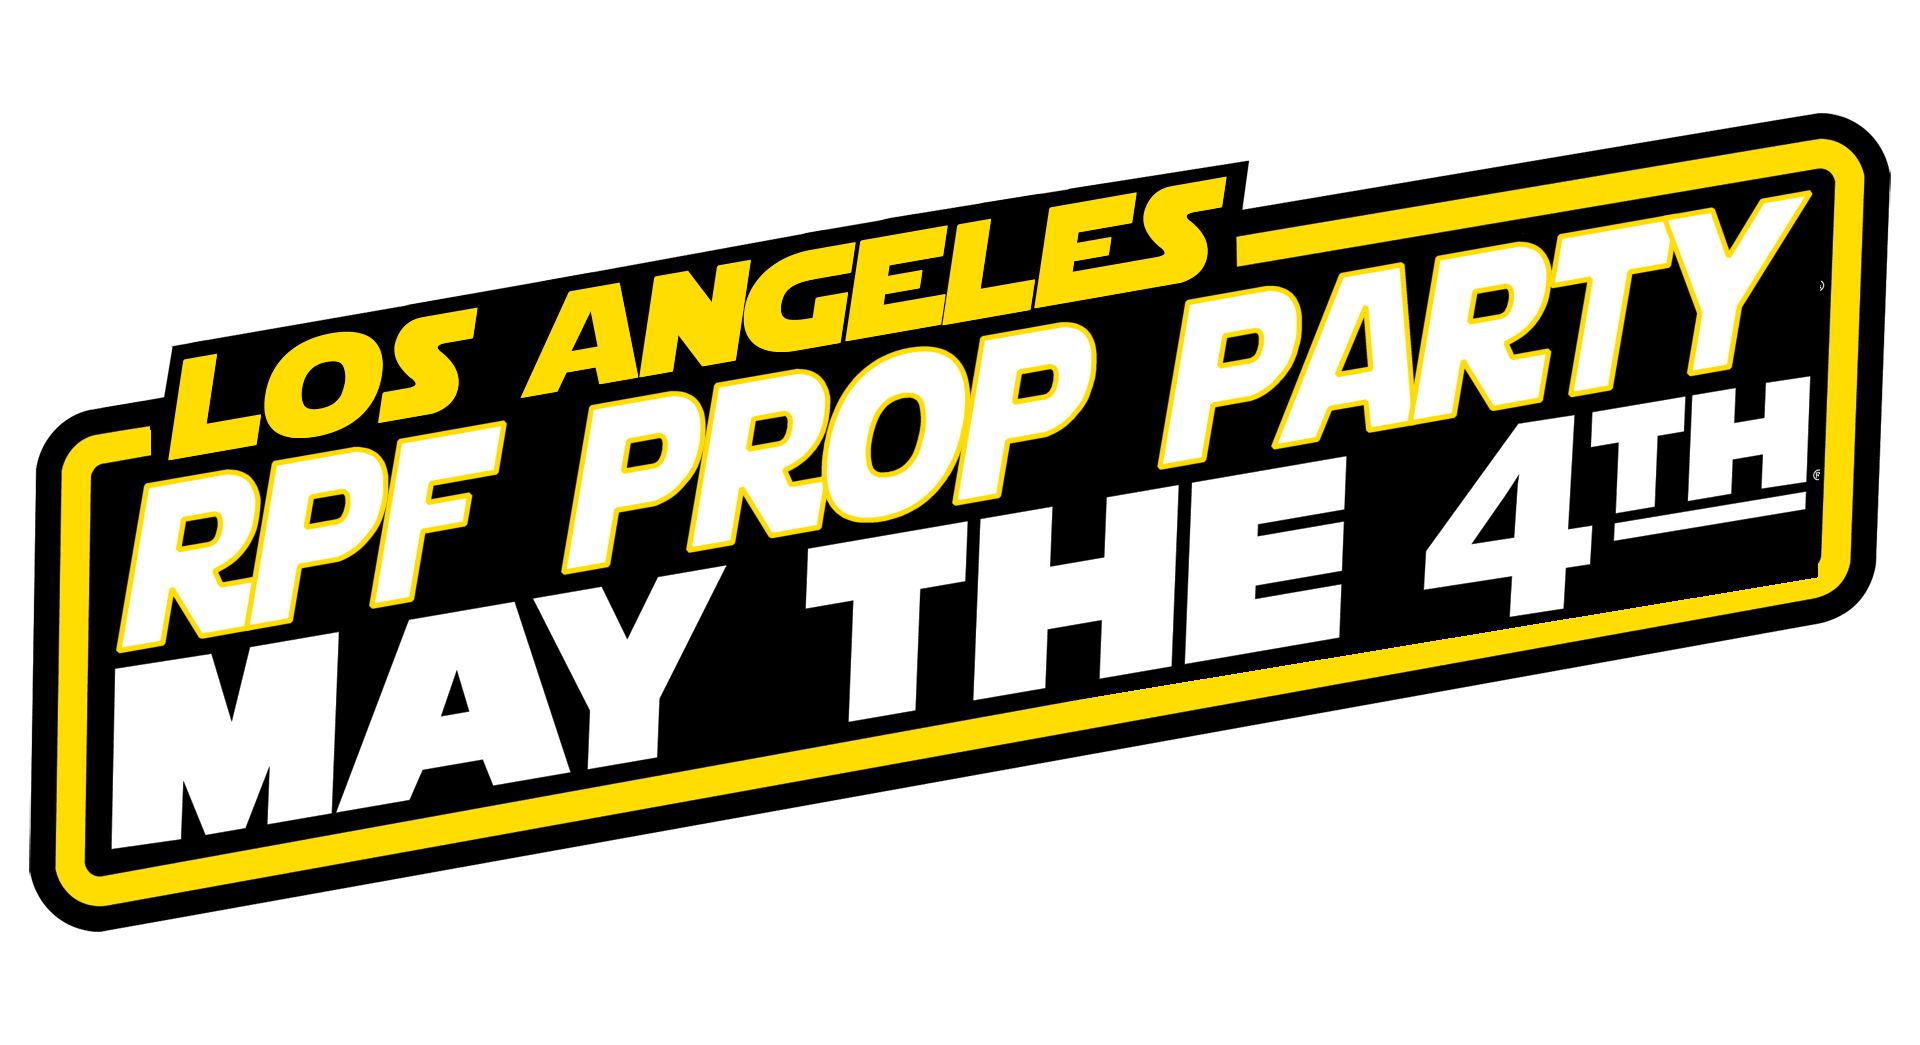 StarWarsDay-MT4thBWY_CMYK_Domestic-transparent.png